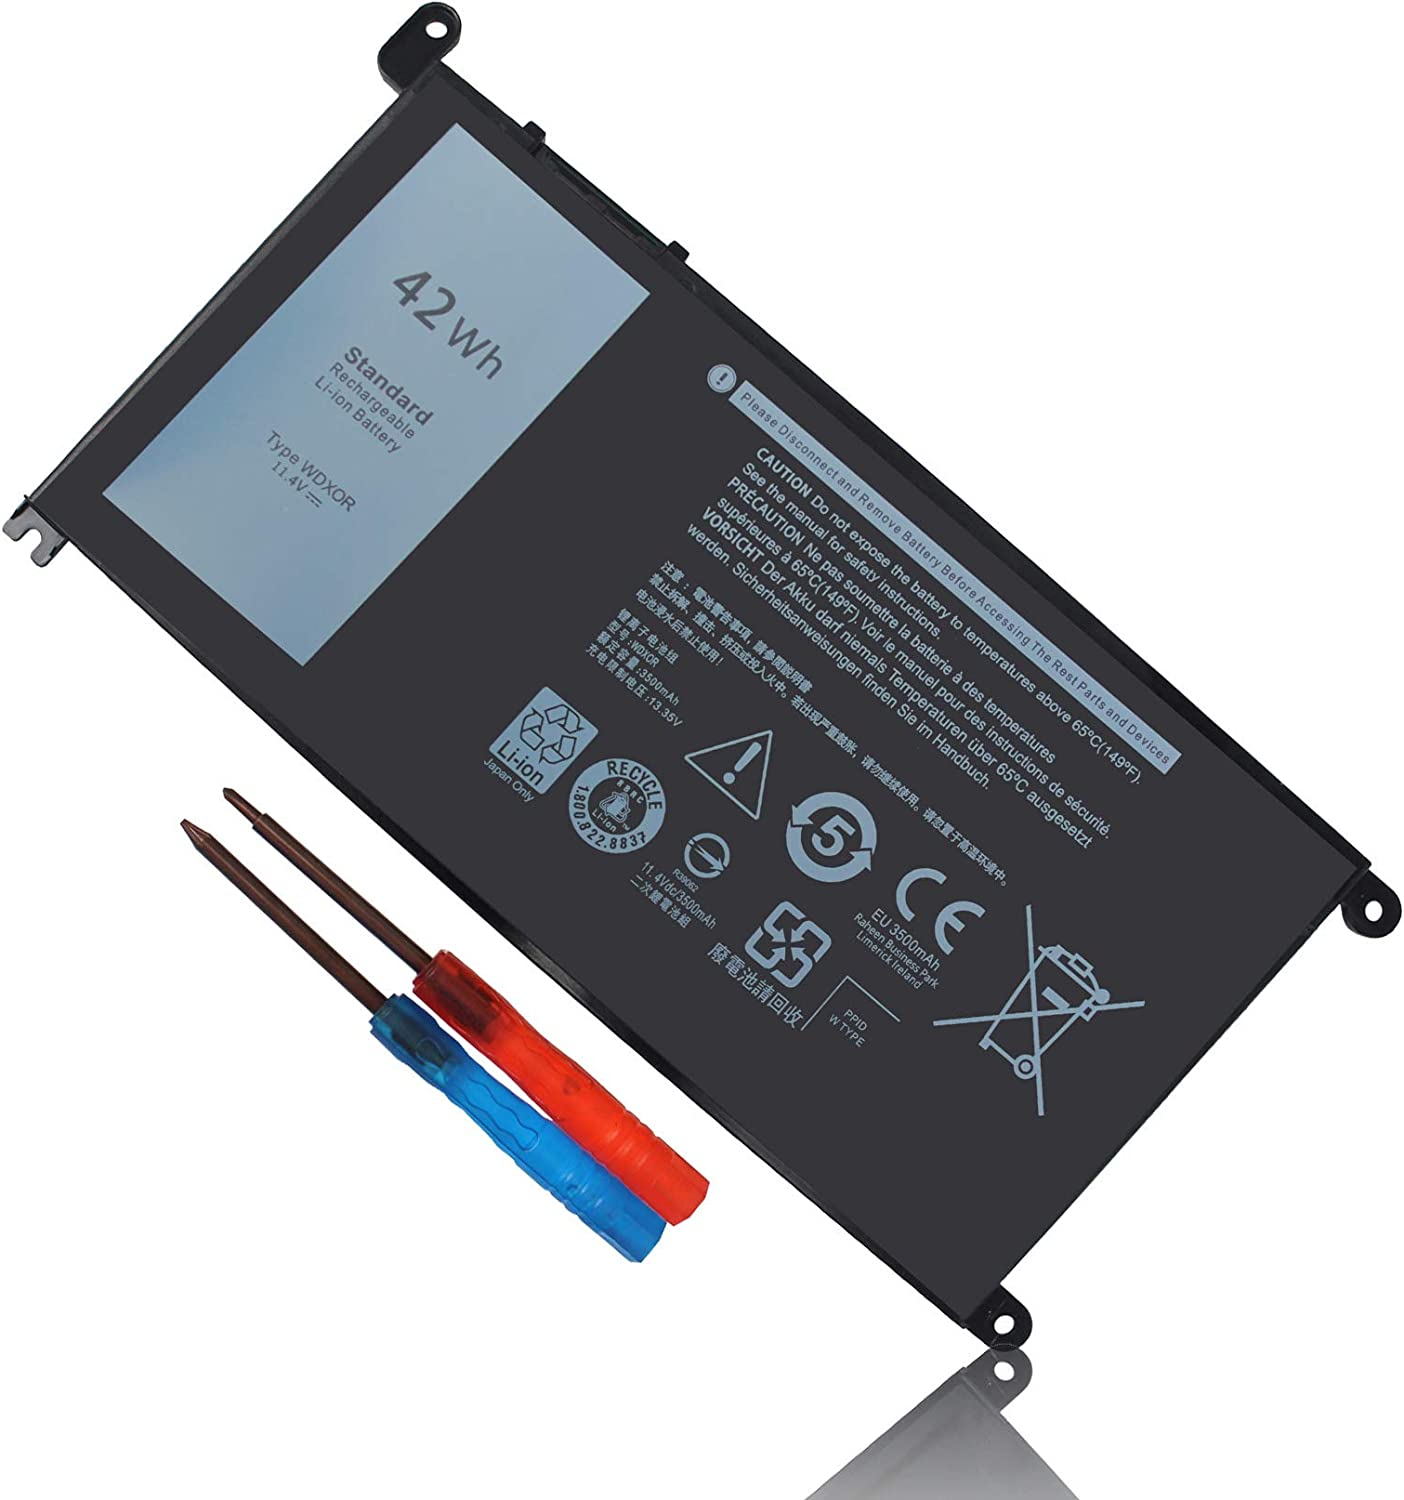 Gomarty WDX0R WDXOR Laptop Battery for Dell Inspiron 13 5378 7368 5379 5368 7378 14-7460 Inspiron 15 5568 7560 5567 Inspiron 17 5767 5770 3CRH3 T2JX4 FC92N CYMGM